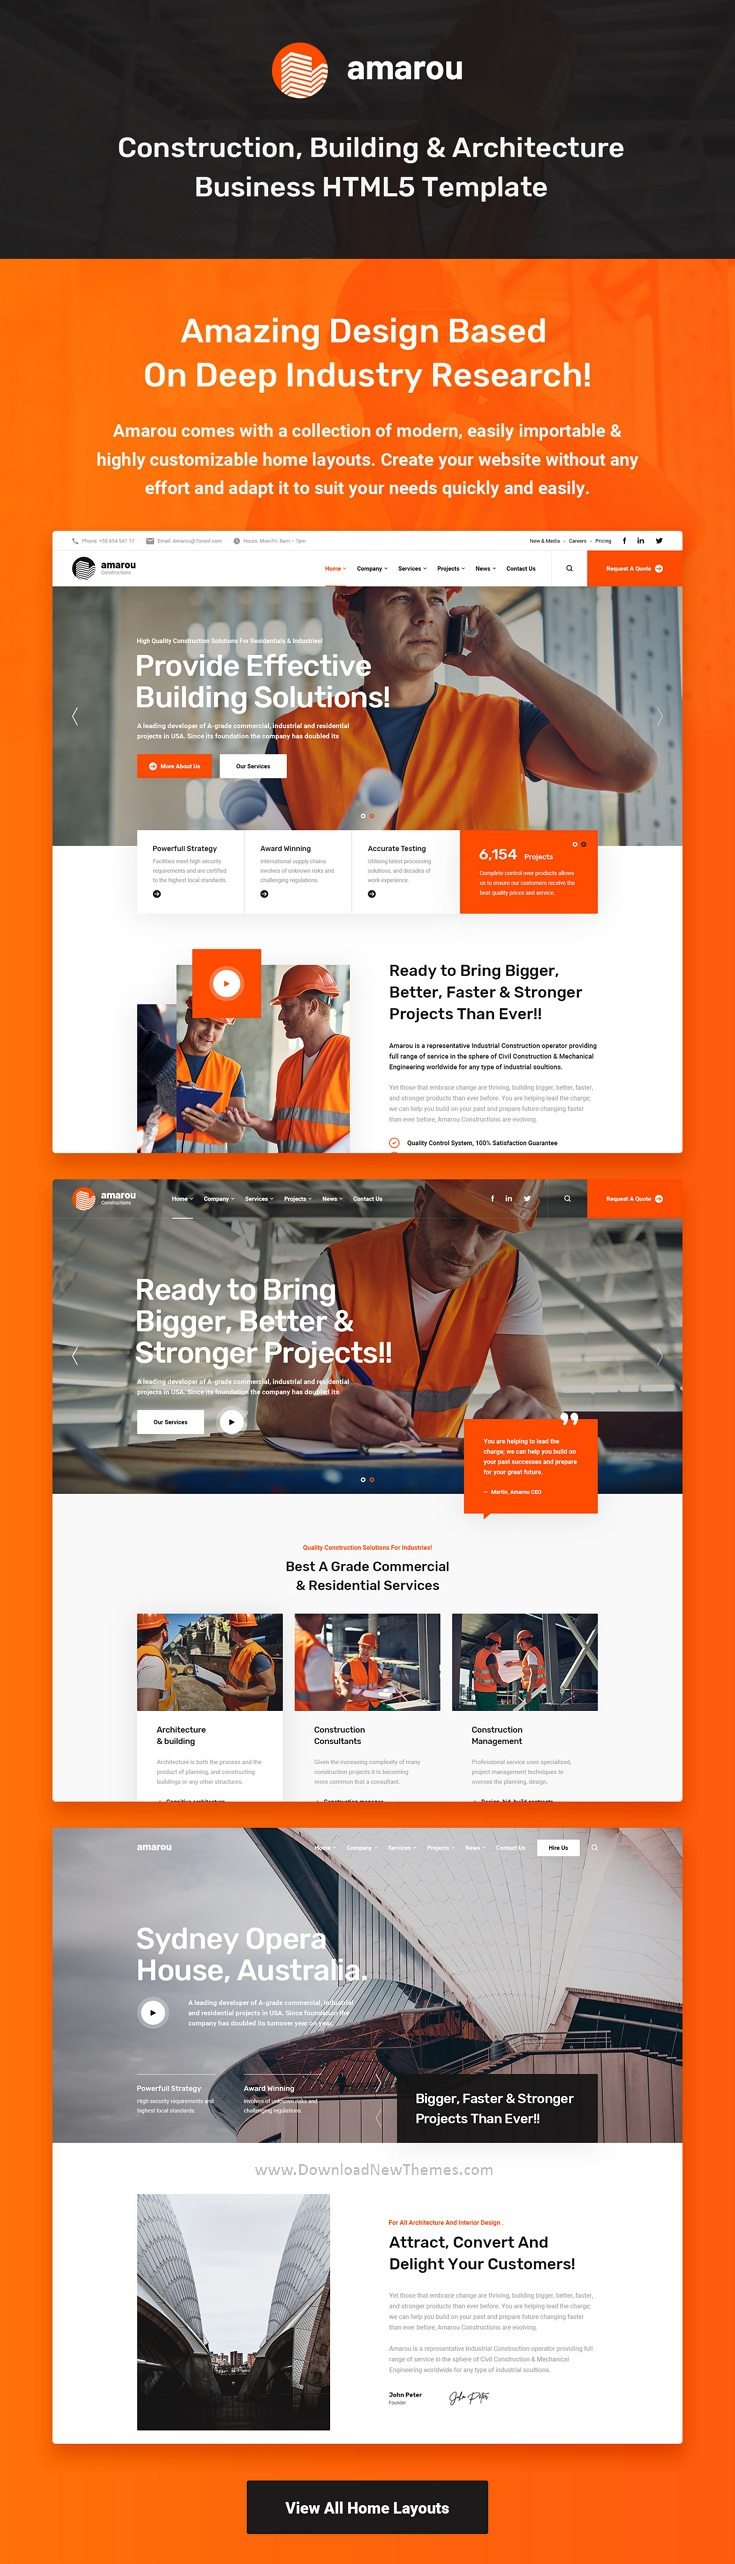 Construction and Building Template